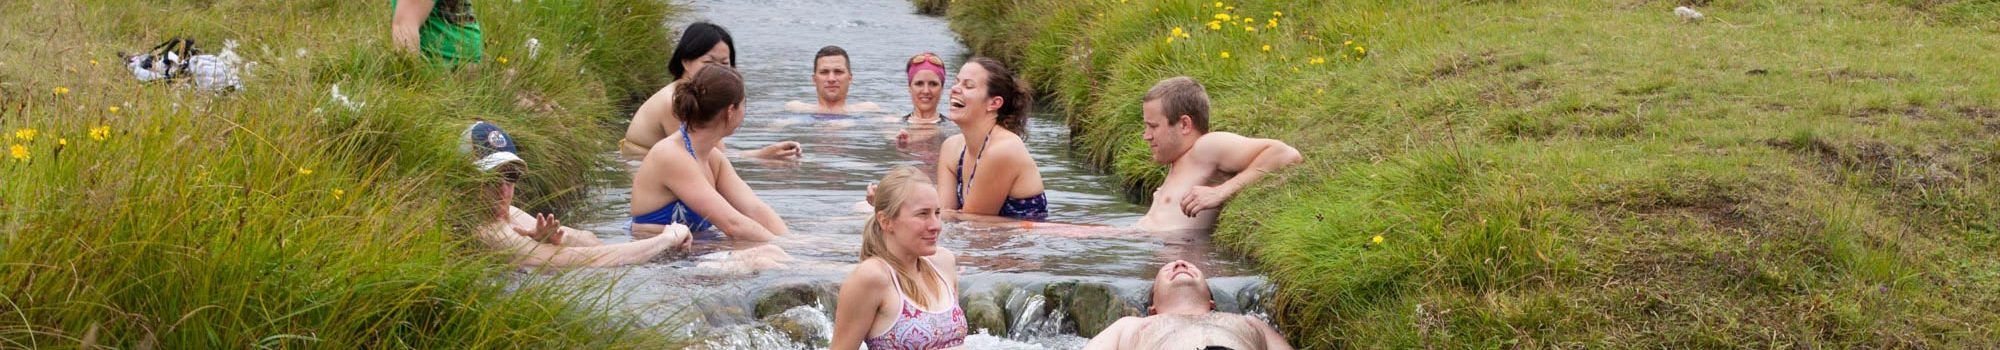 people-enjoying-hot-spring